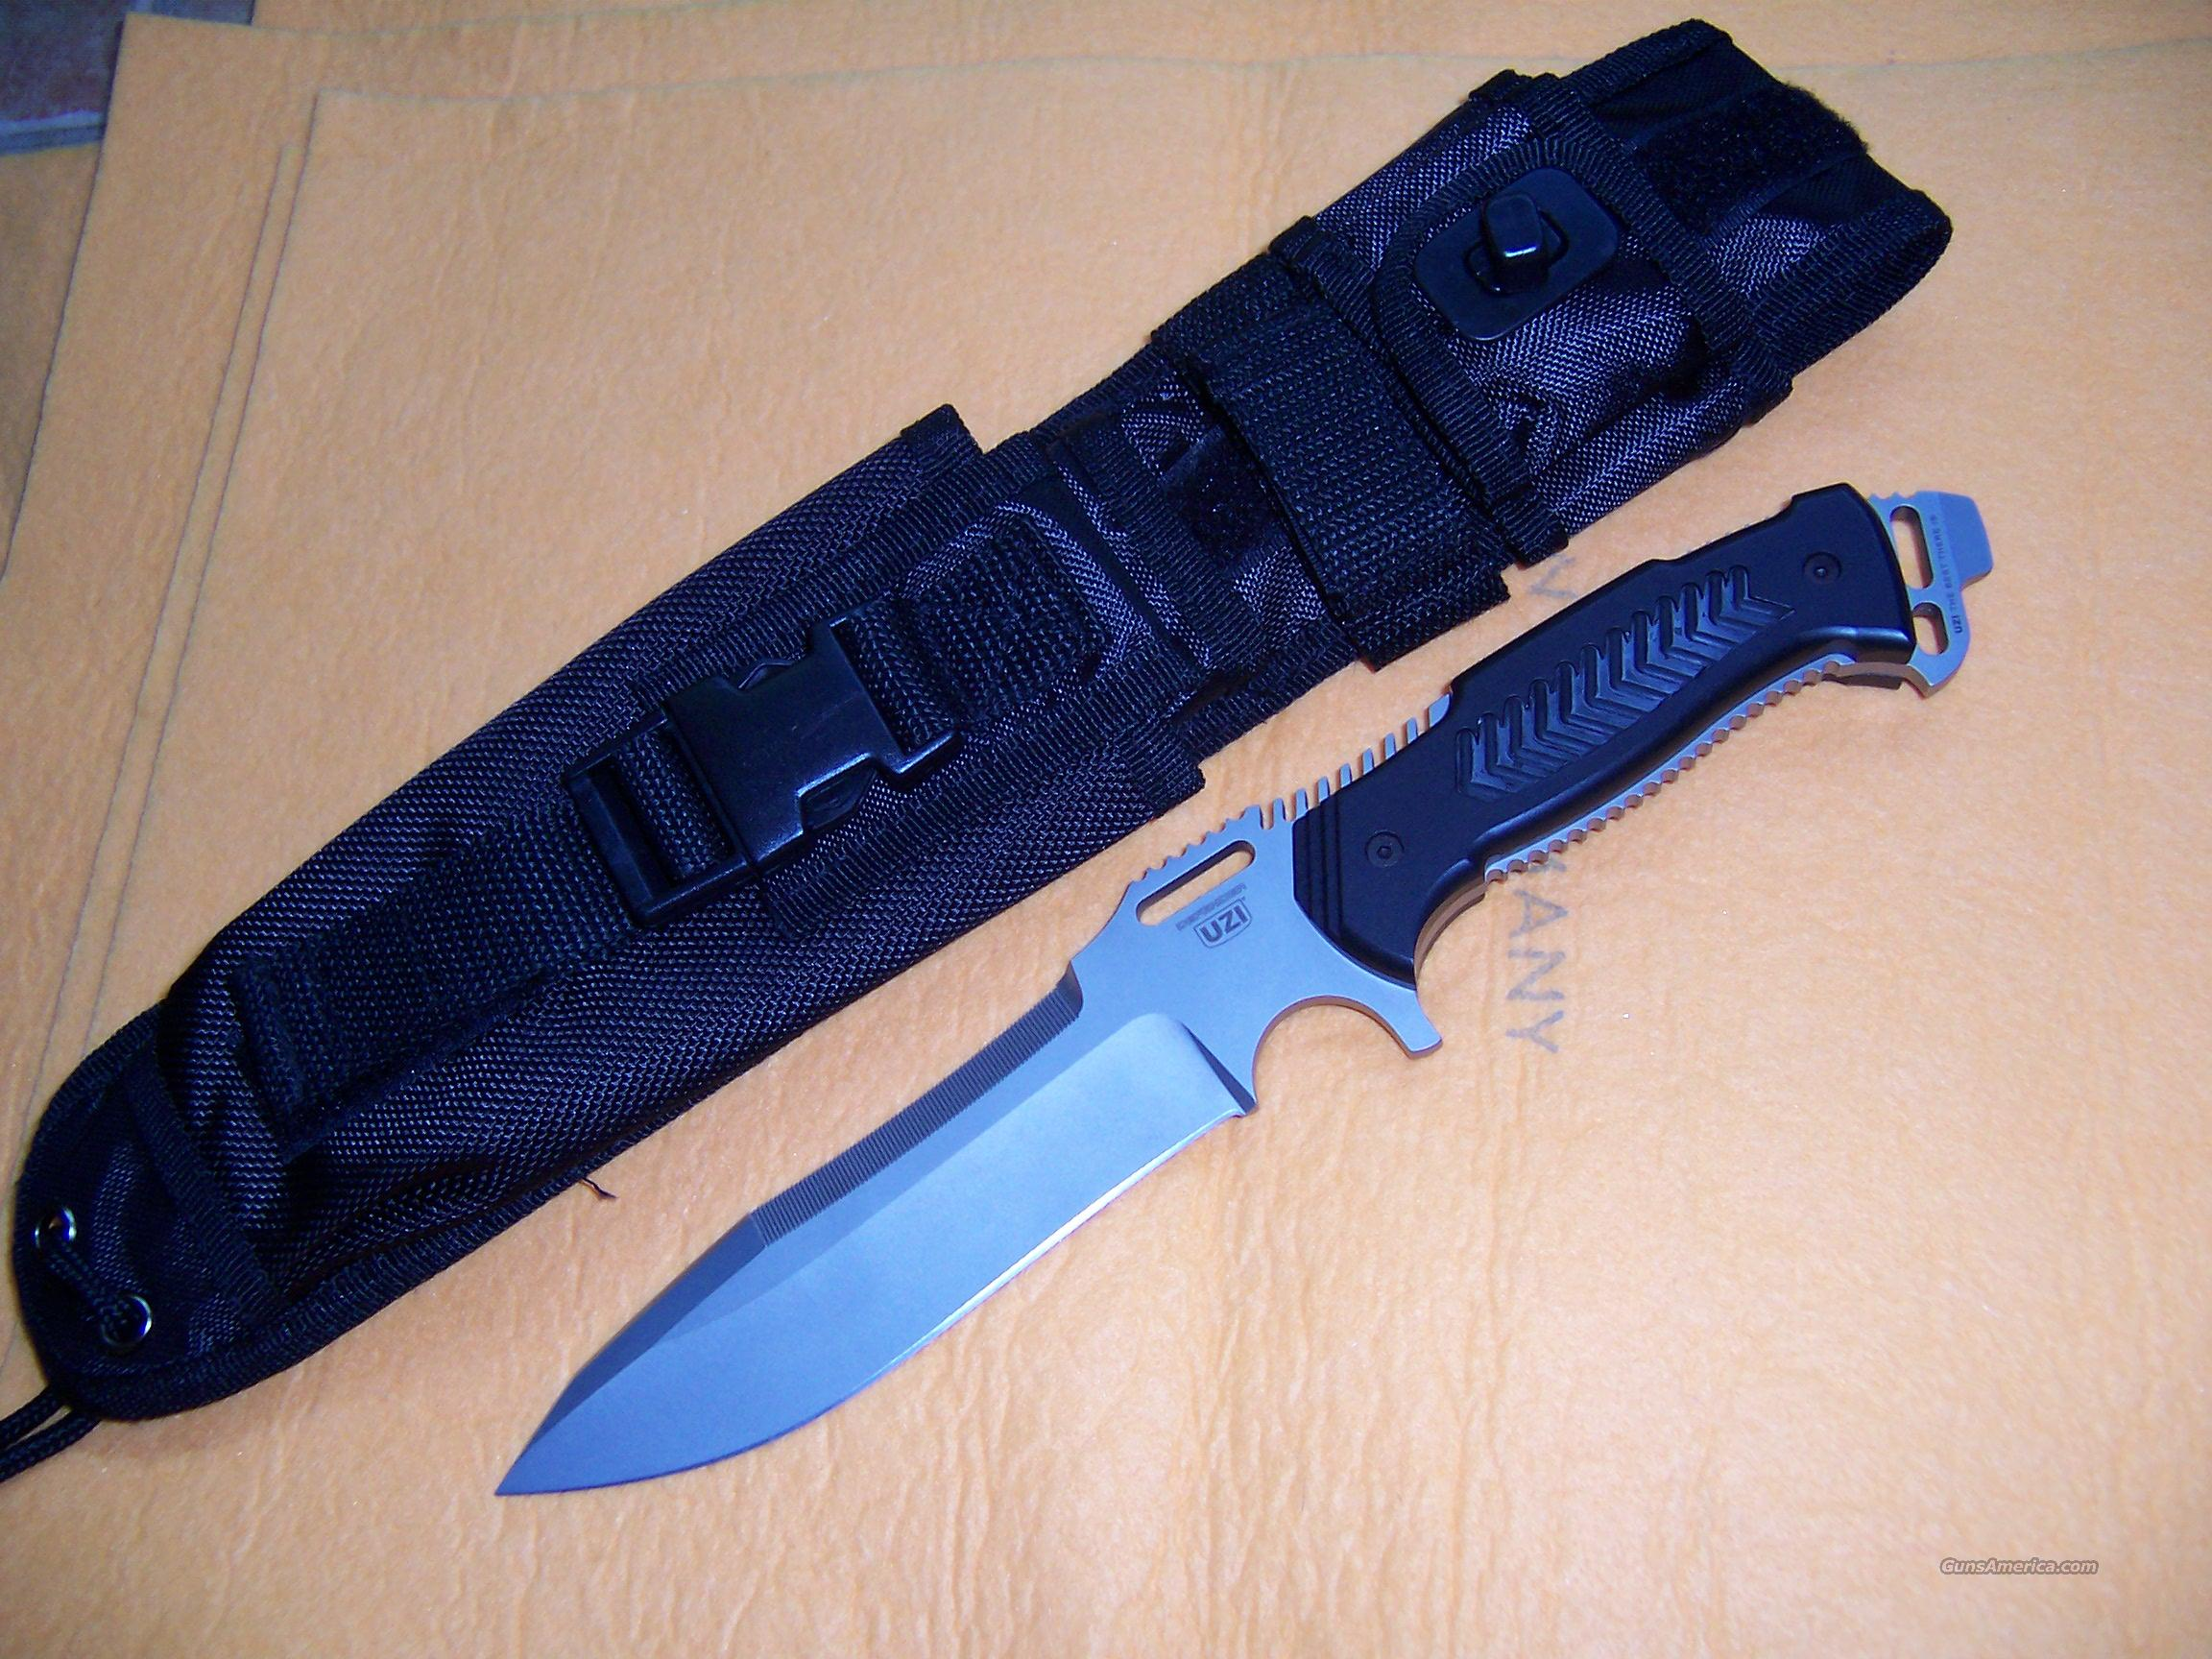 UZI DEFENDER TACTICAL KNIFE DESIGNED BY FRED CARTER  Non-Guns > Knives/Swords > Military > Non-Bayonets